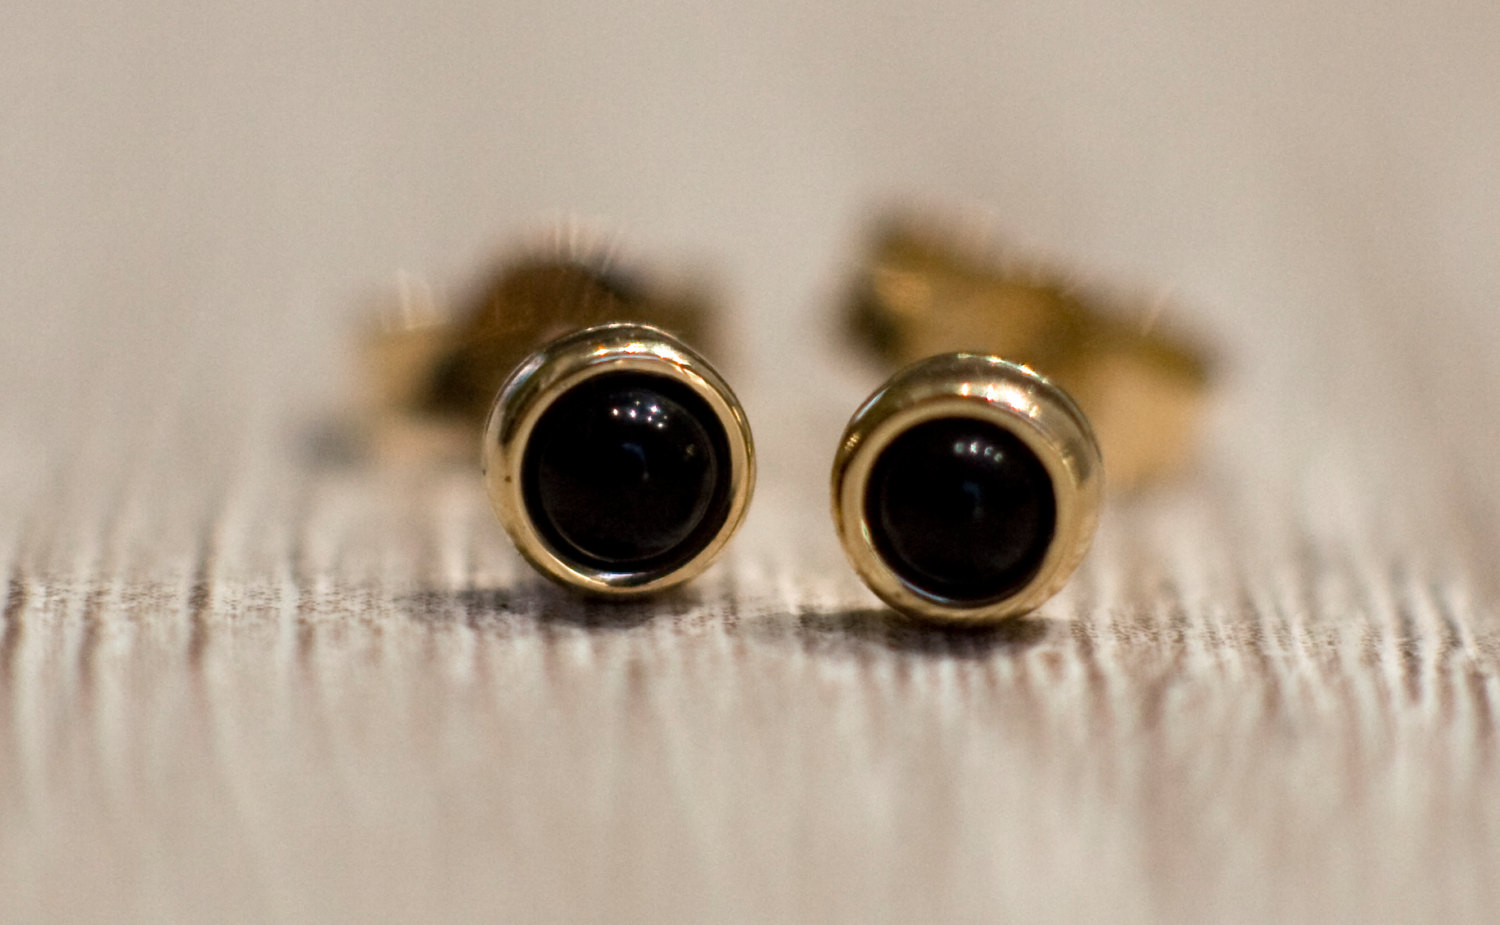 gold diamonds p carat stud earrings black wh with